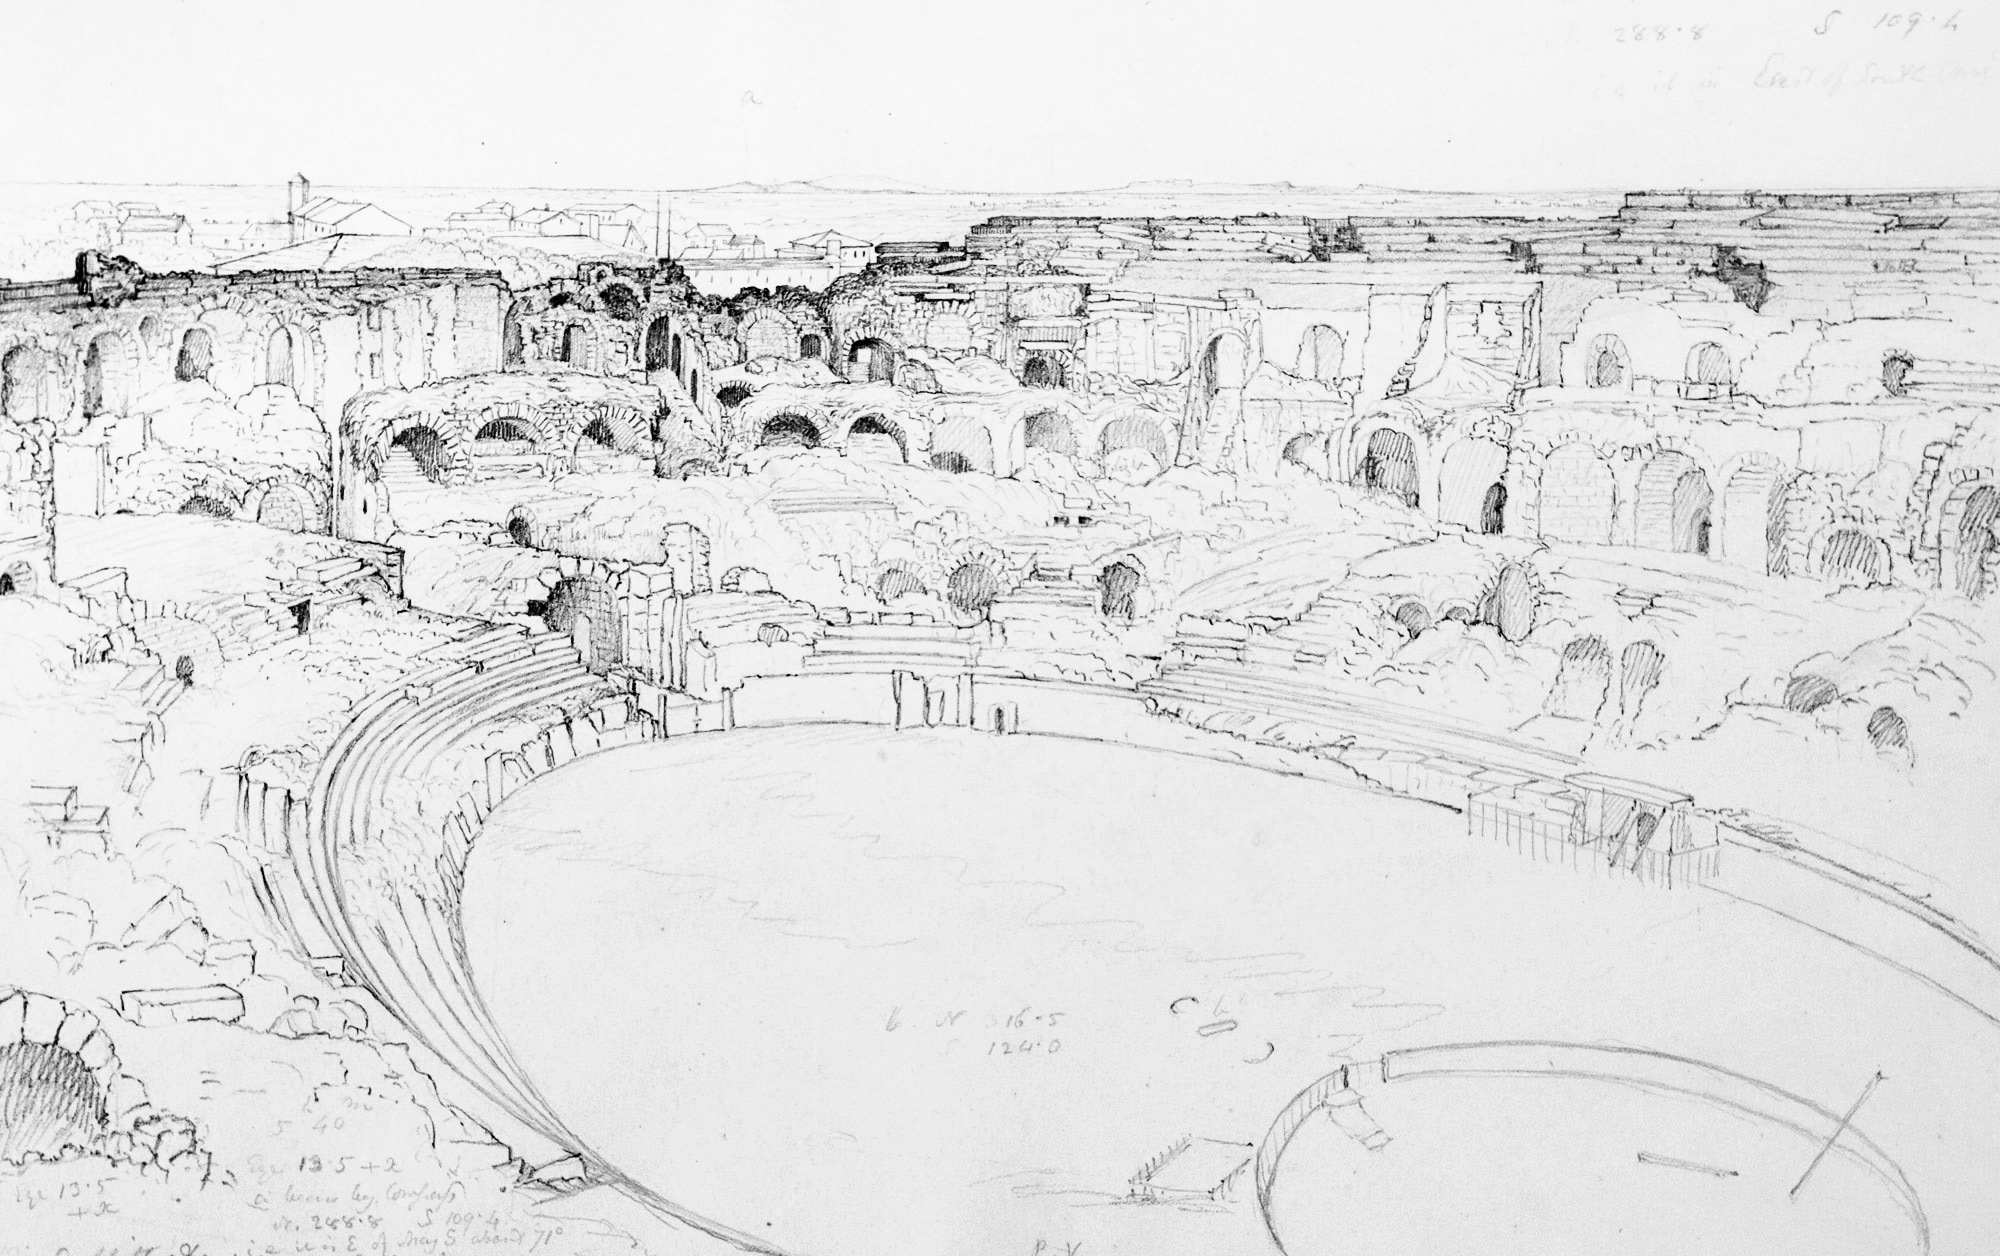 Interior of the Amphitheater at Nimes Sept 21, 1850